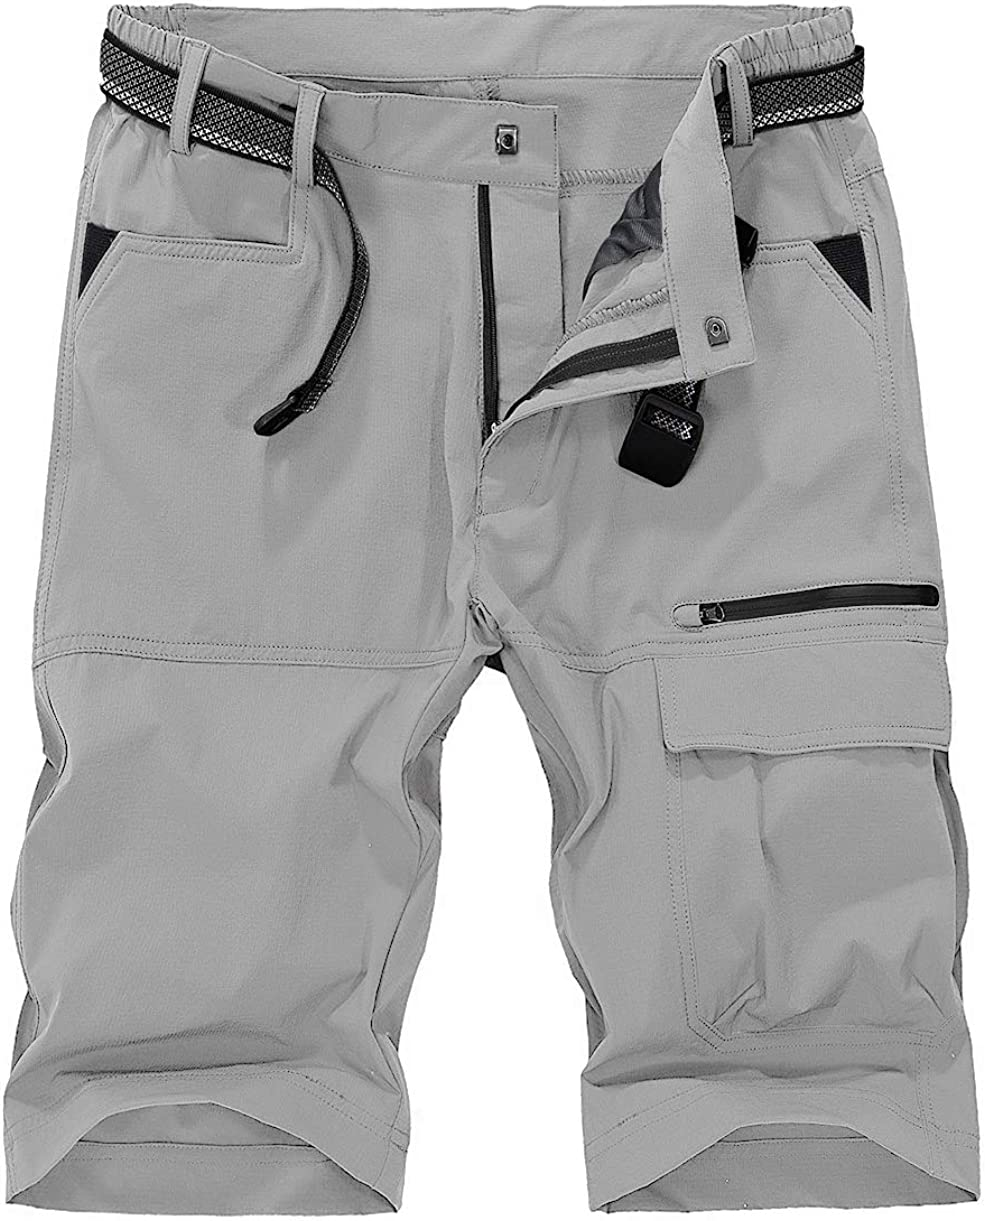 TBMPOY Men's Quick Dry Hiking Shorts Lightweight Cargo Shorts Zipper Pockets Outdoor Sports Casual